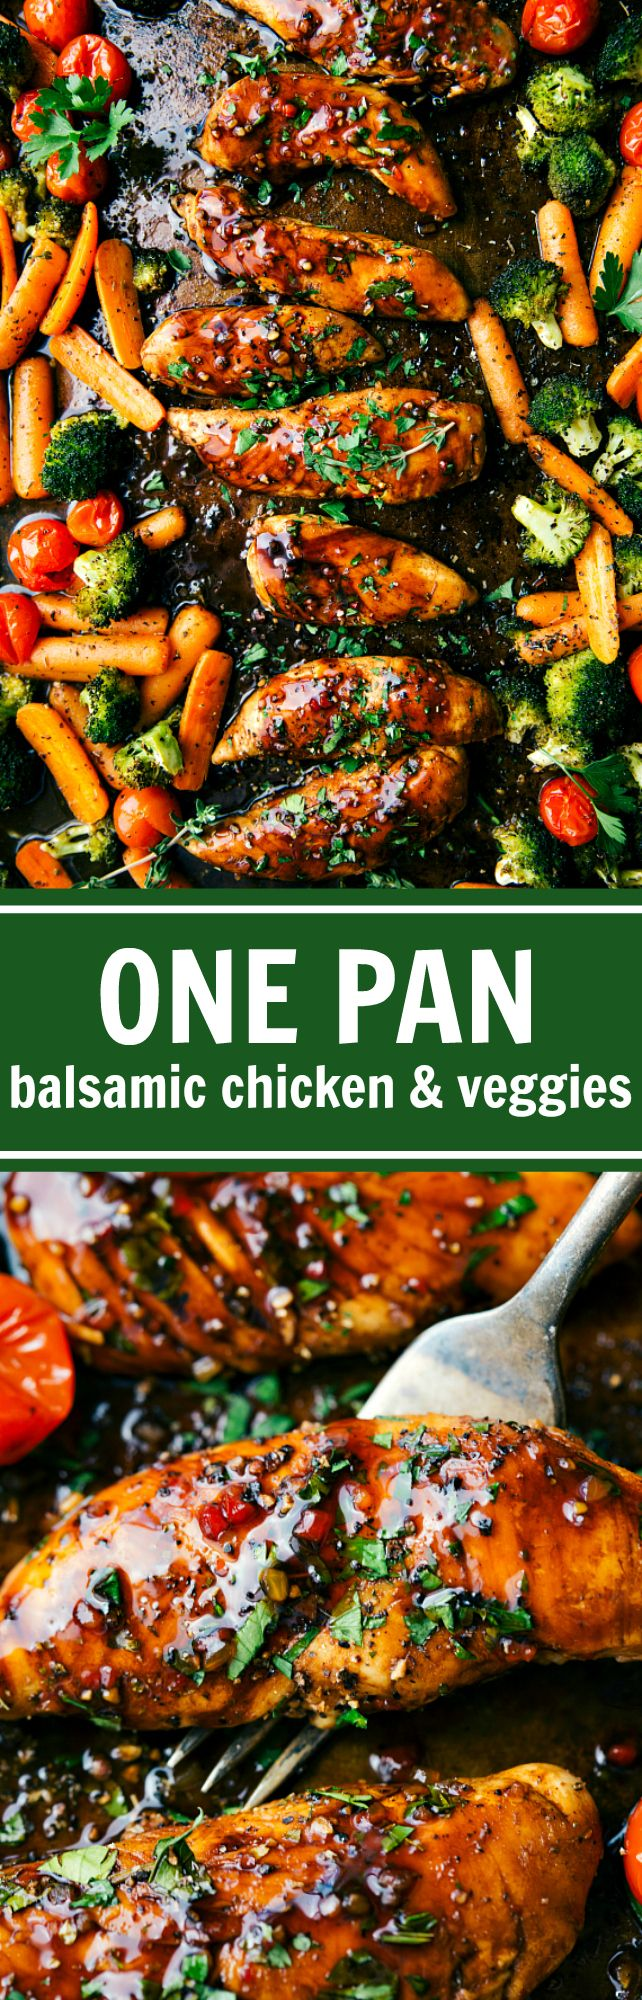 Sweet Balsamic chicken and veggies made in one pan. Ten minute prep and twenty minute cooking time -- this meal is efficient, healthy, and simple to make! via chelseasmessyapron.com